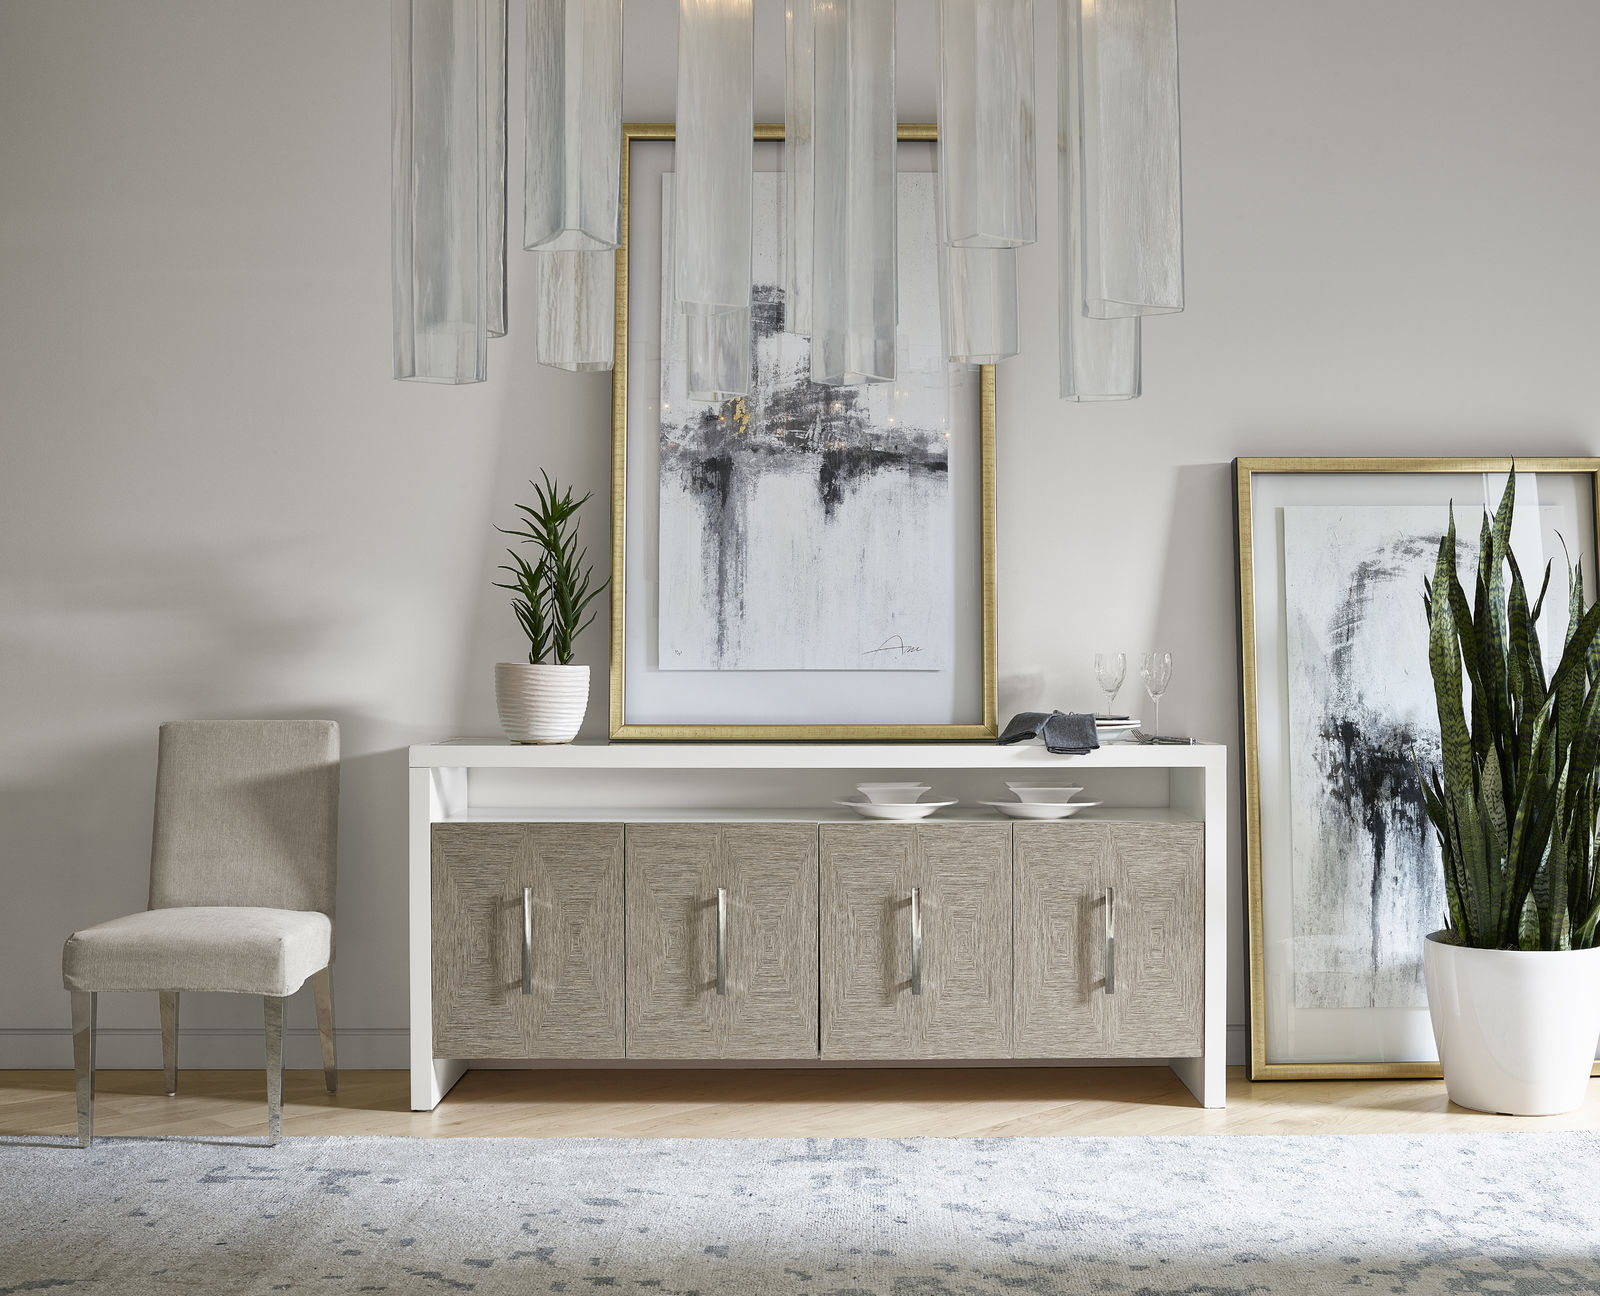 Dining room sideboard with art resting on top